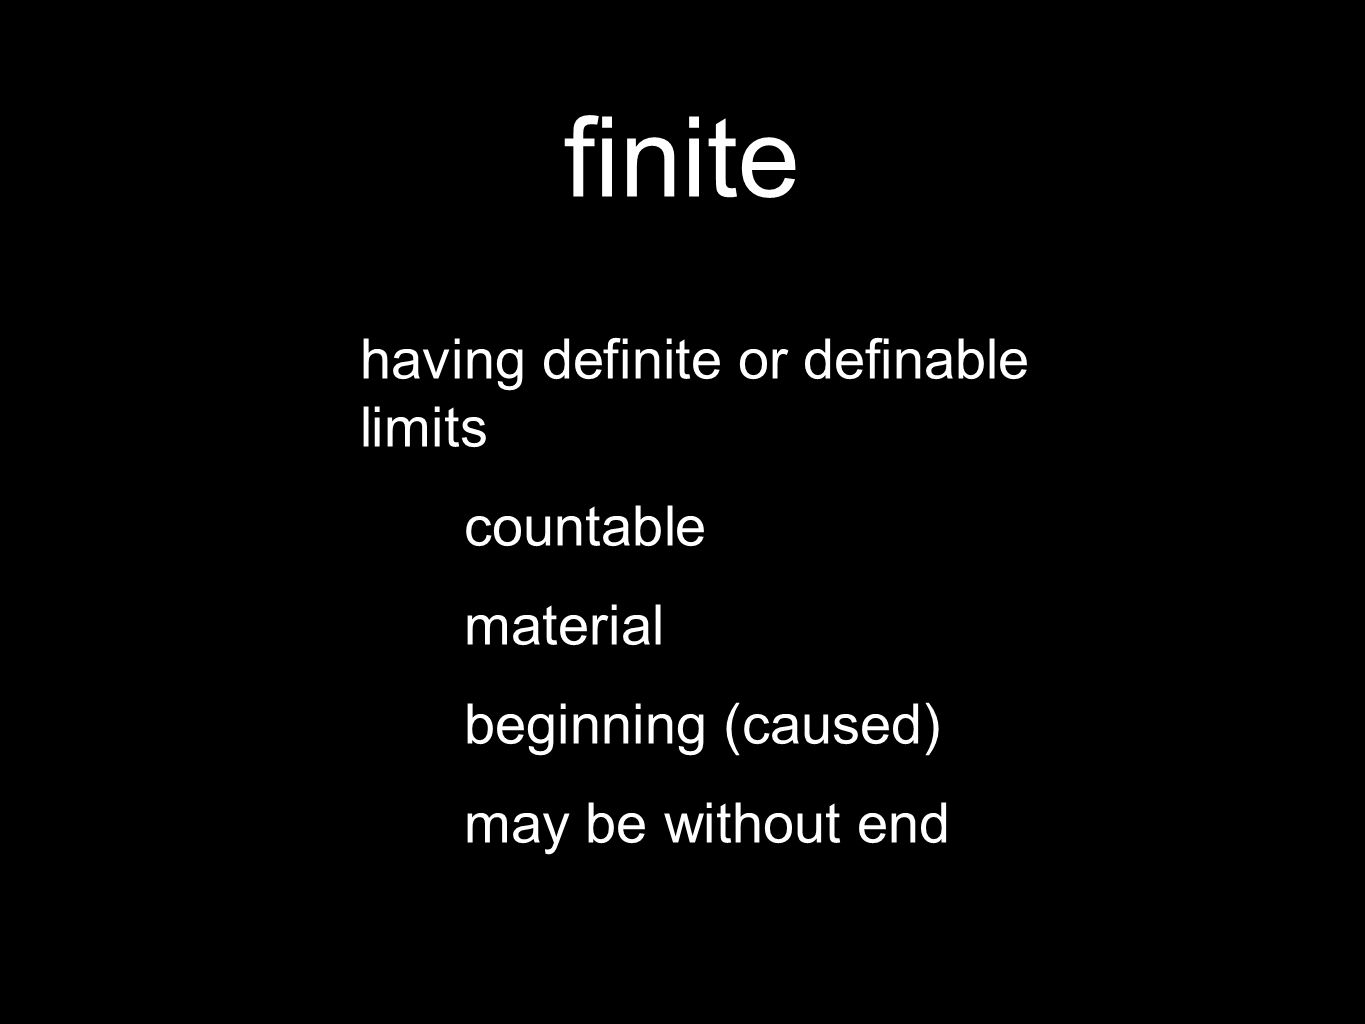 finite having definite or definable limits countable material beginning (caused) may be without end